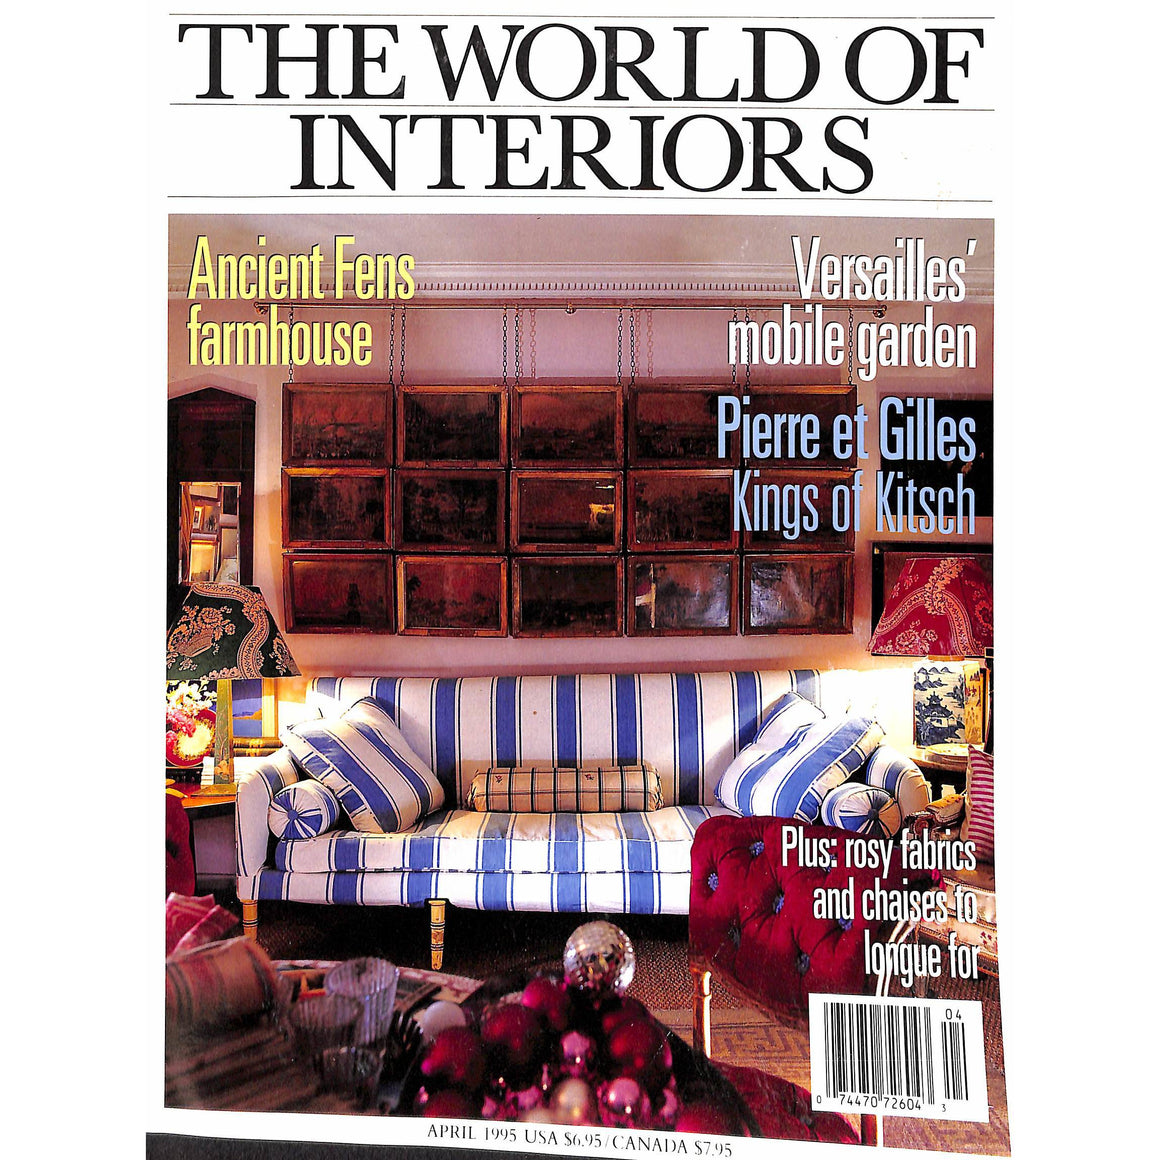 The World of Interiors April 1995